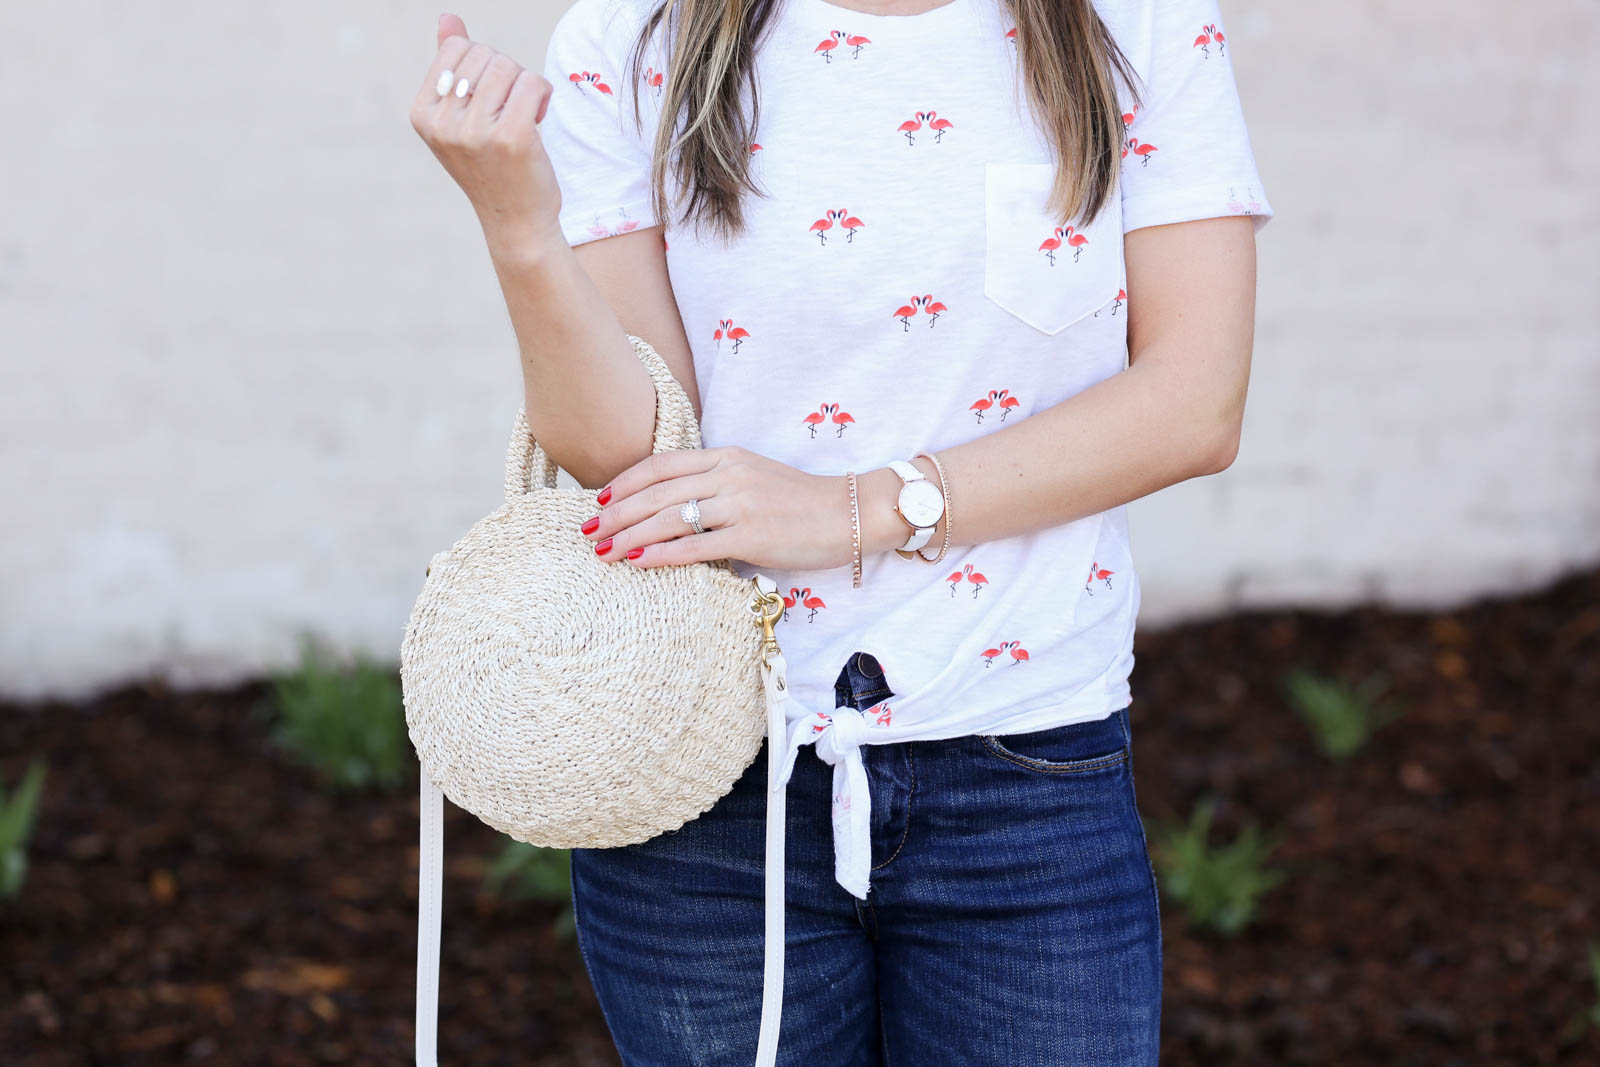 j.crew flamingo tee, clare v petite alice straw bag